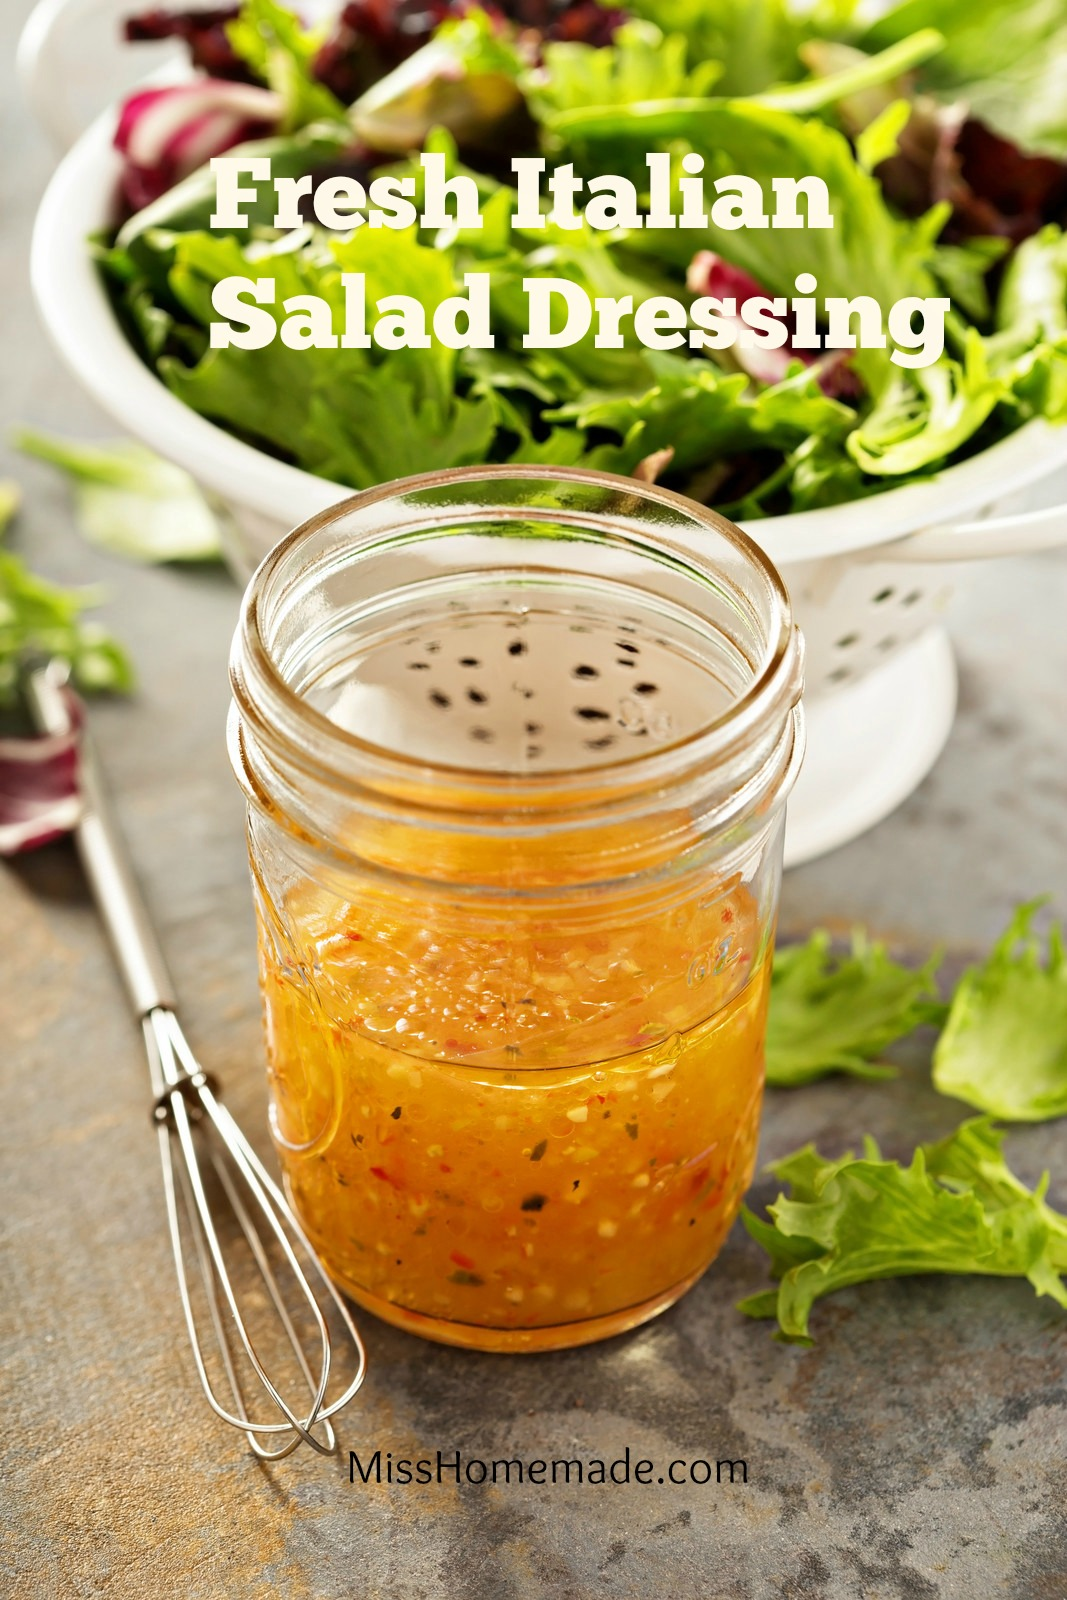 Fresh Italian Salad Dressing from Scratch - this and more at MissHomemade.com